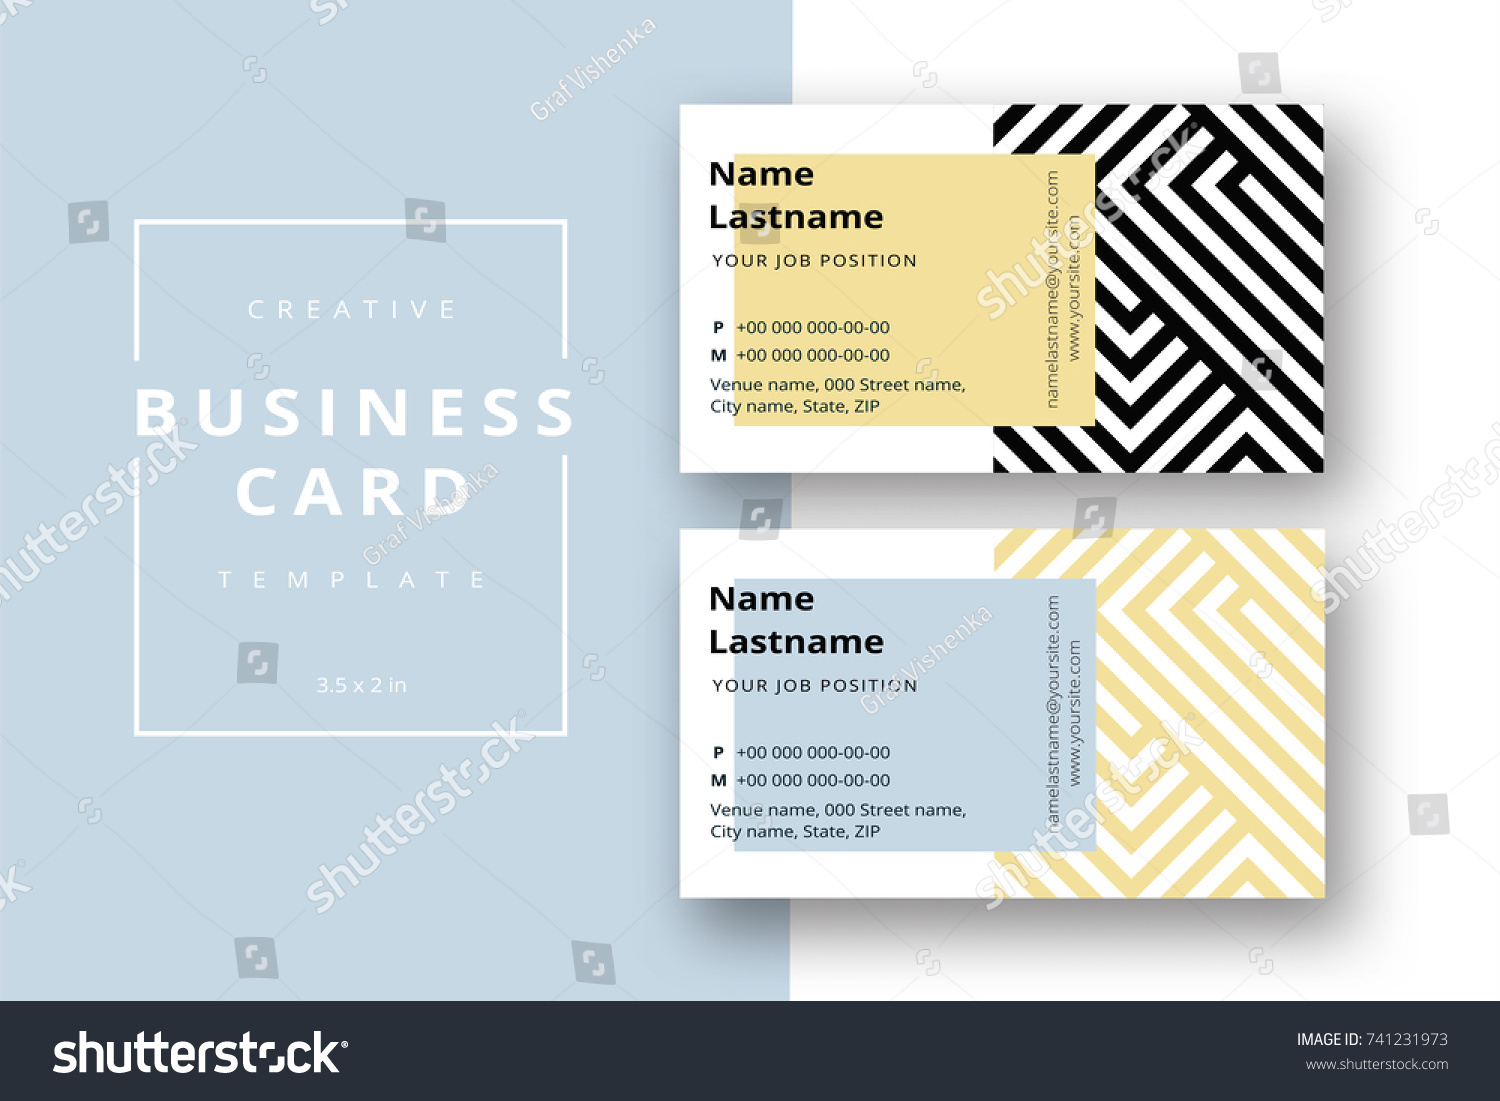 Trendy Minimal Abstract Business Card Template Stock Vector ...